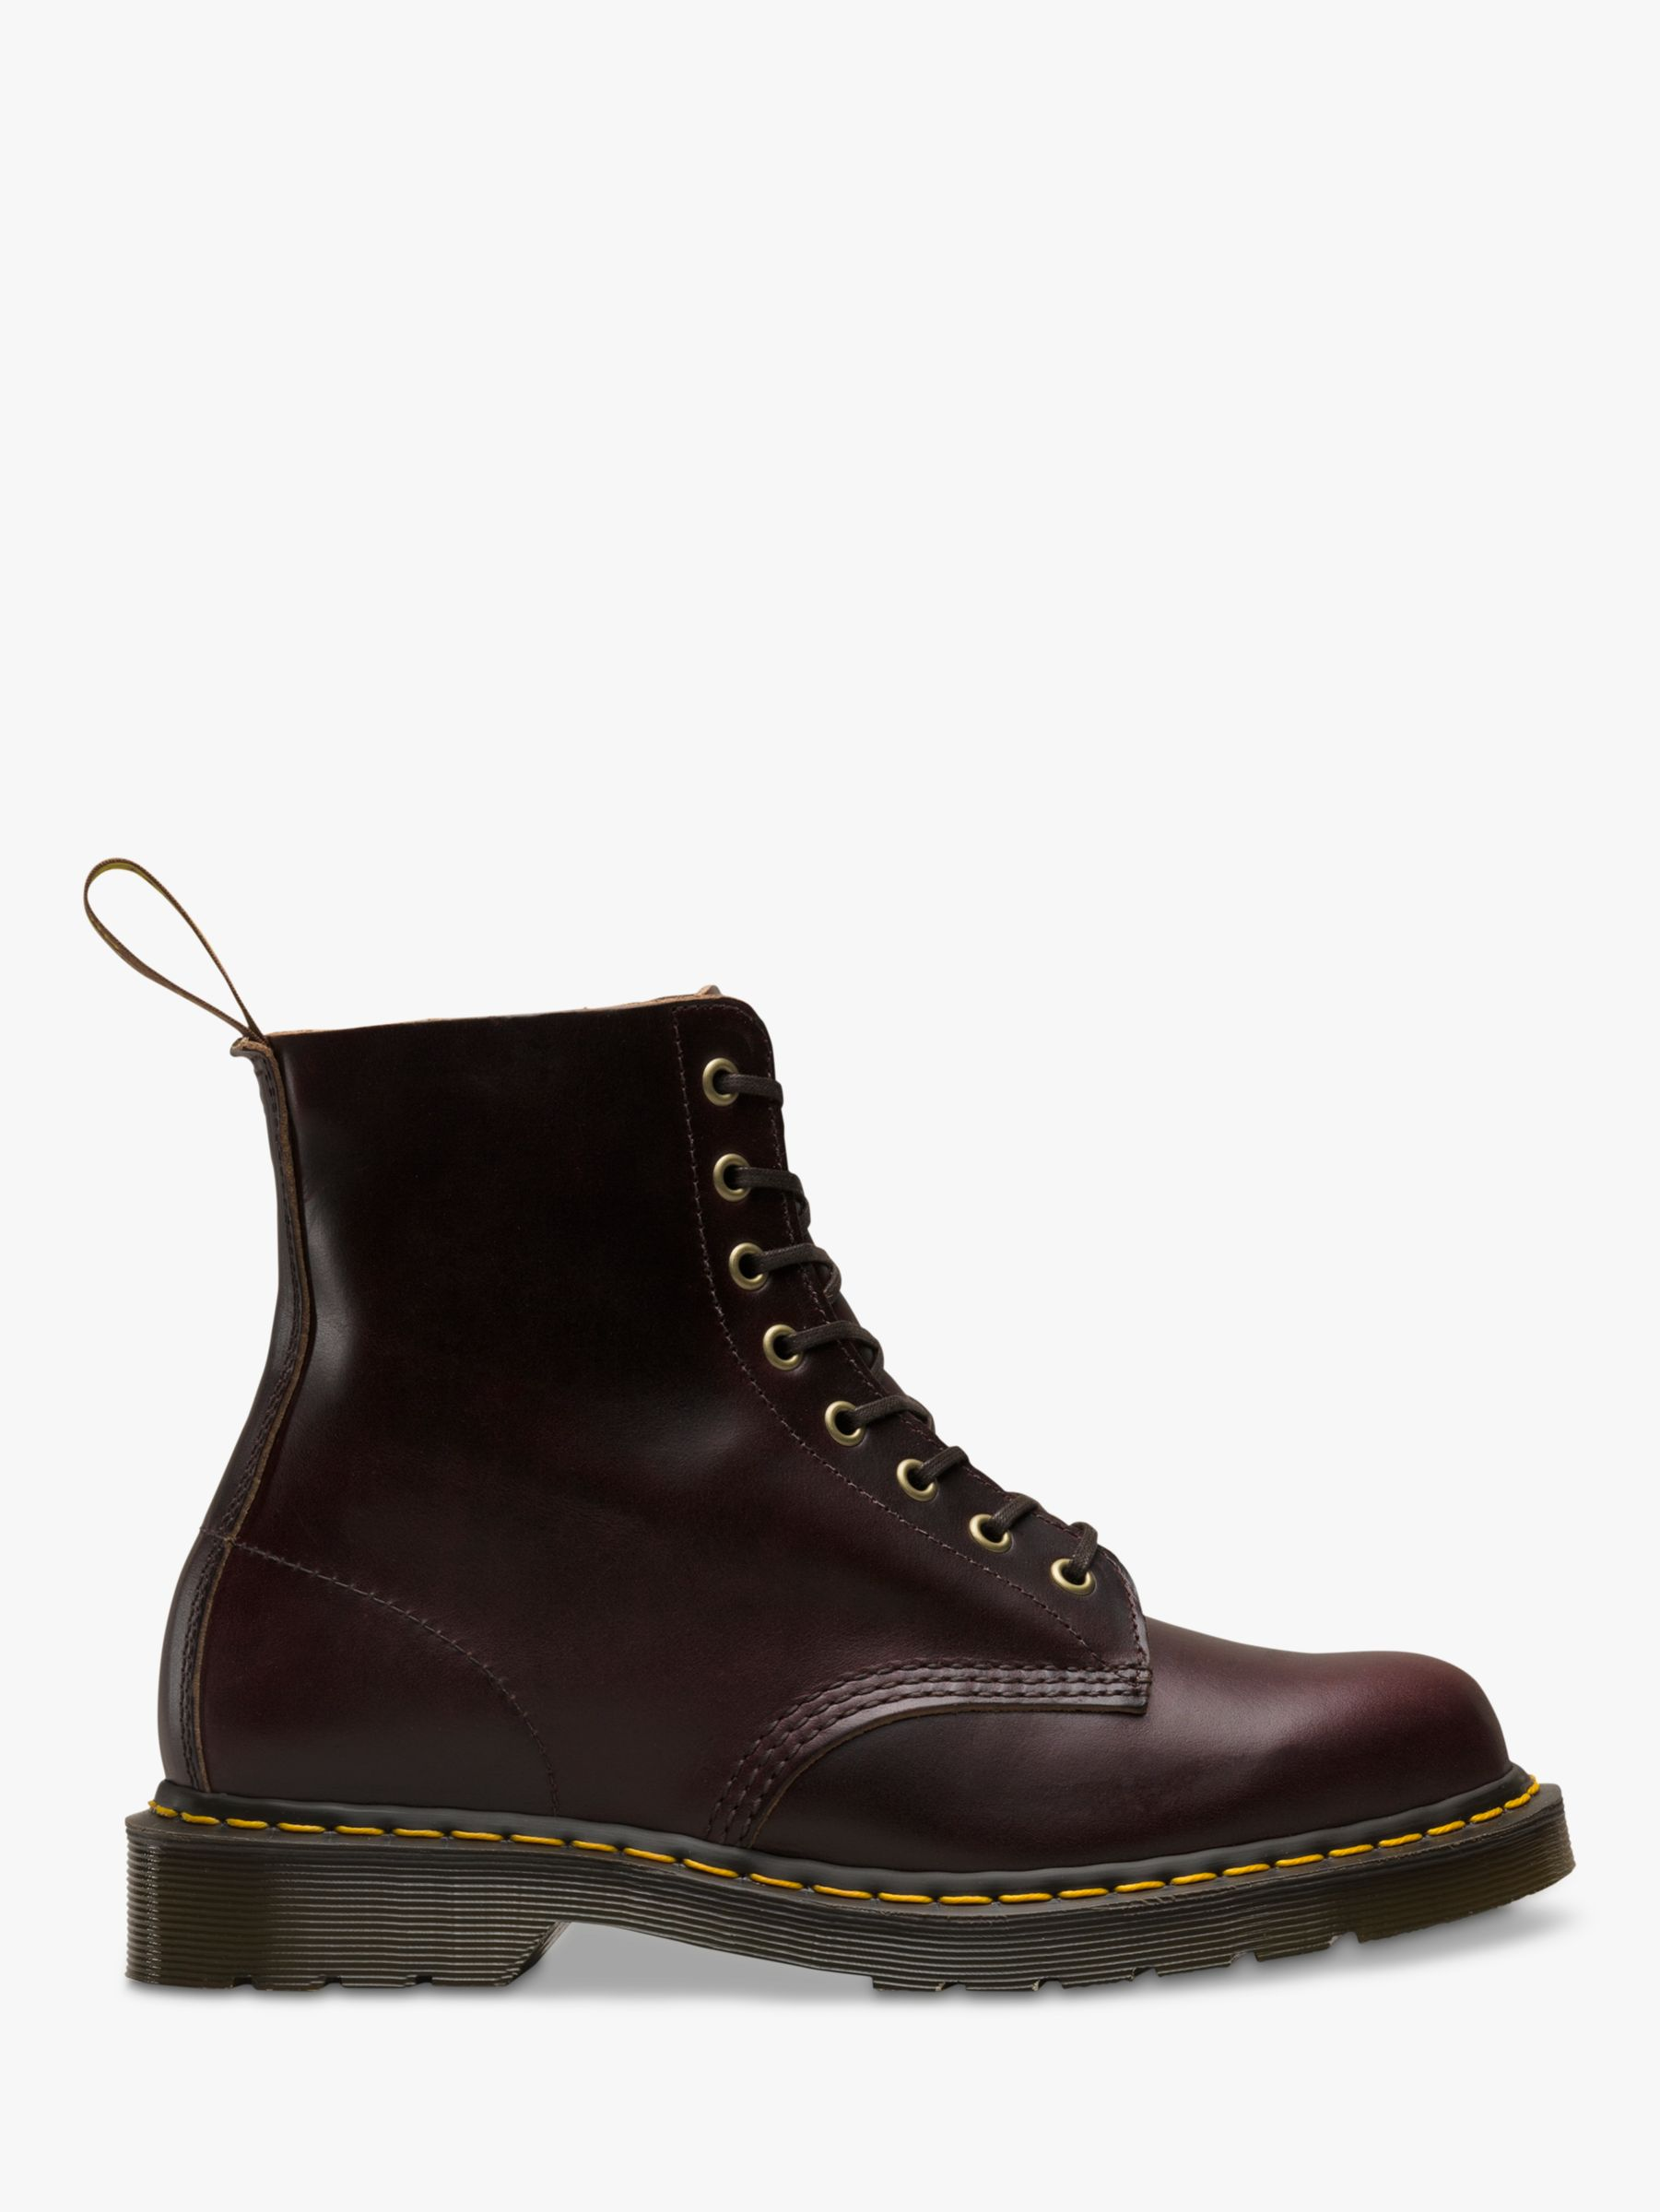 Dr Martens Dr Martens 1460 Pascal Leather Boots, Burgundy Chrome